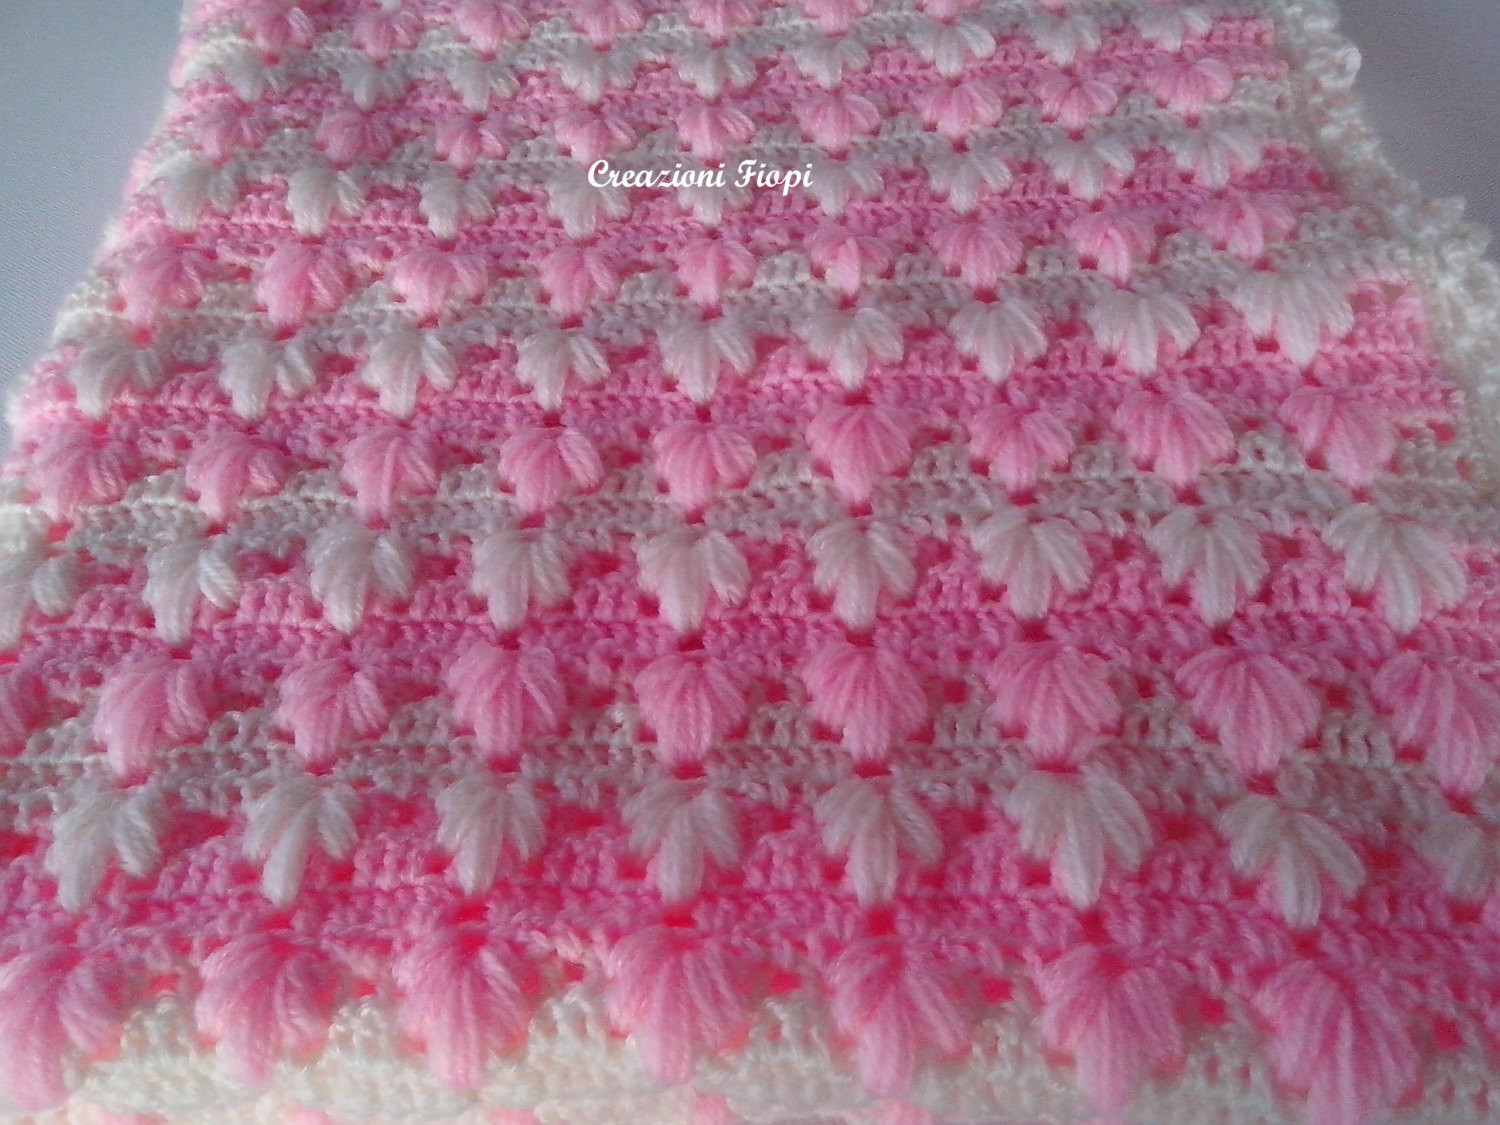 Lovely Crochet Baby Blanket Tutorial Crochet Blanket Tutorial Of New 44 Images Crochet Blanket Tutorial